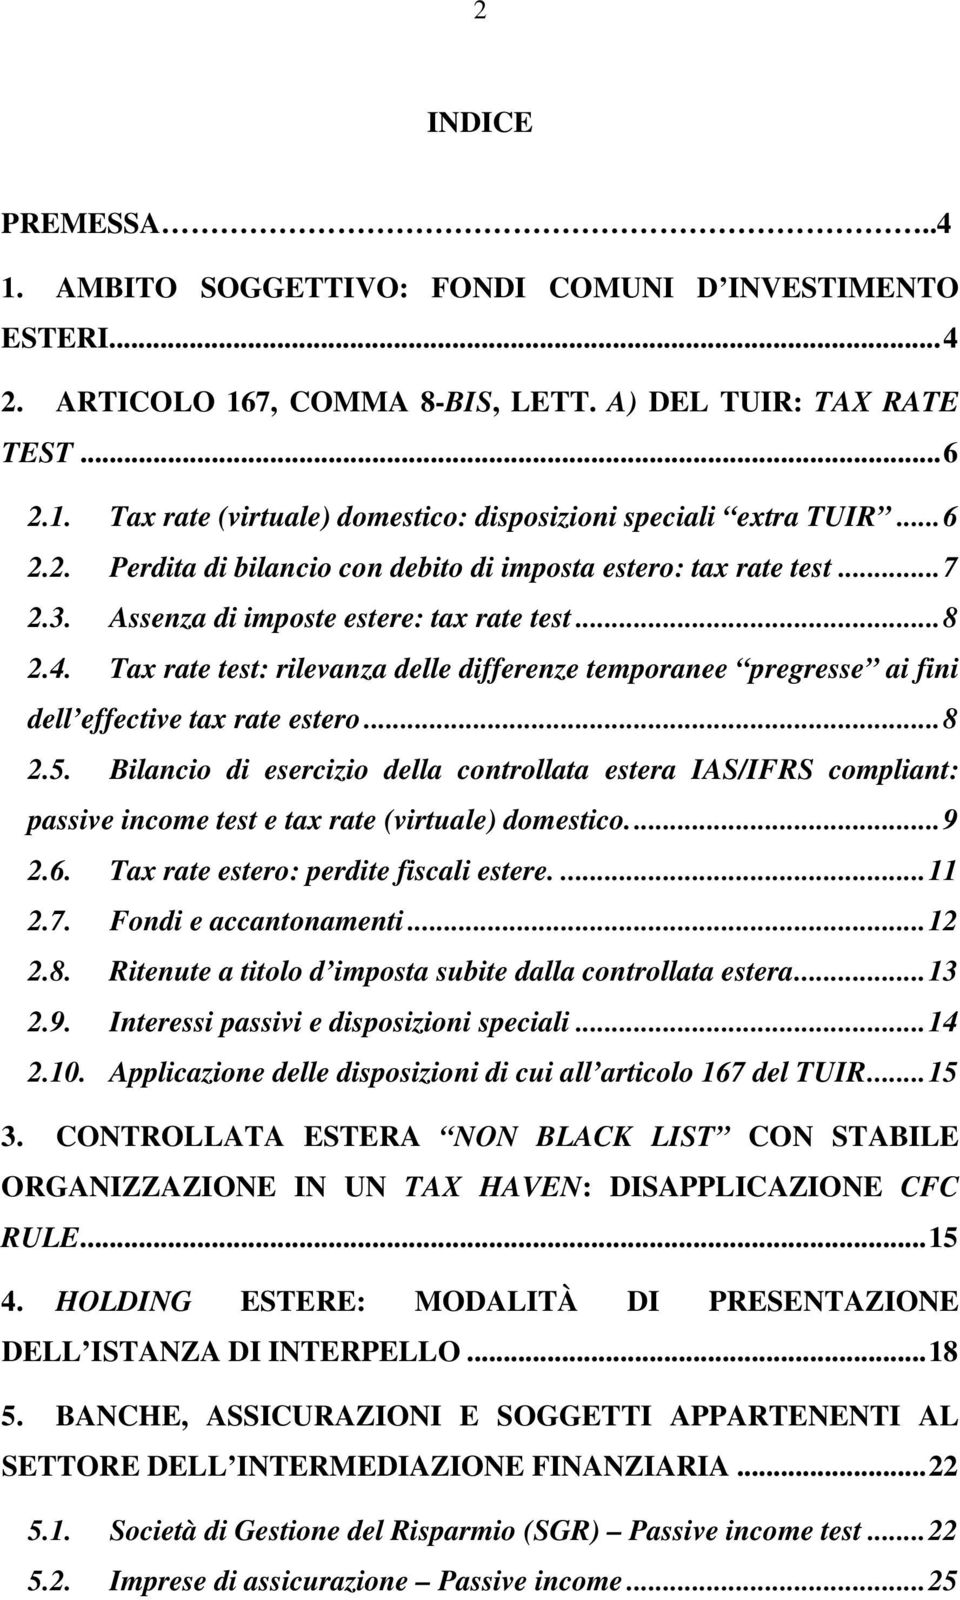 Tax rate test: rilevanza delle differenze temporanee pregresse ai fini dell effective tax rate estero...8 2.5.